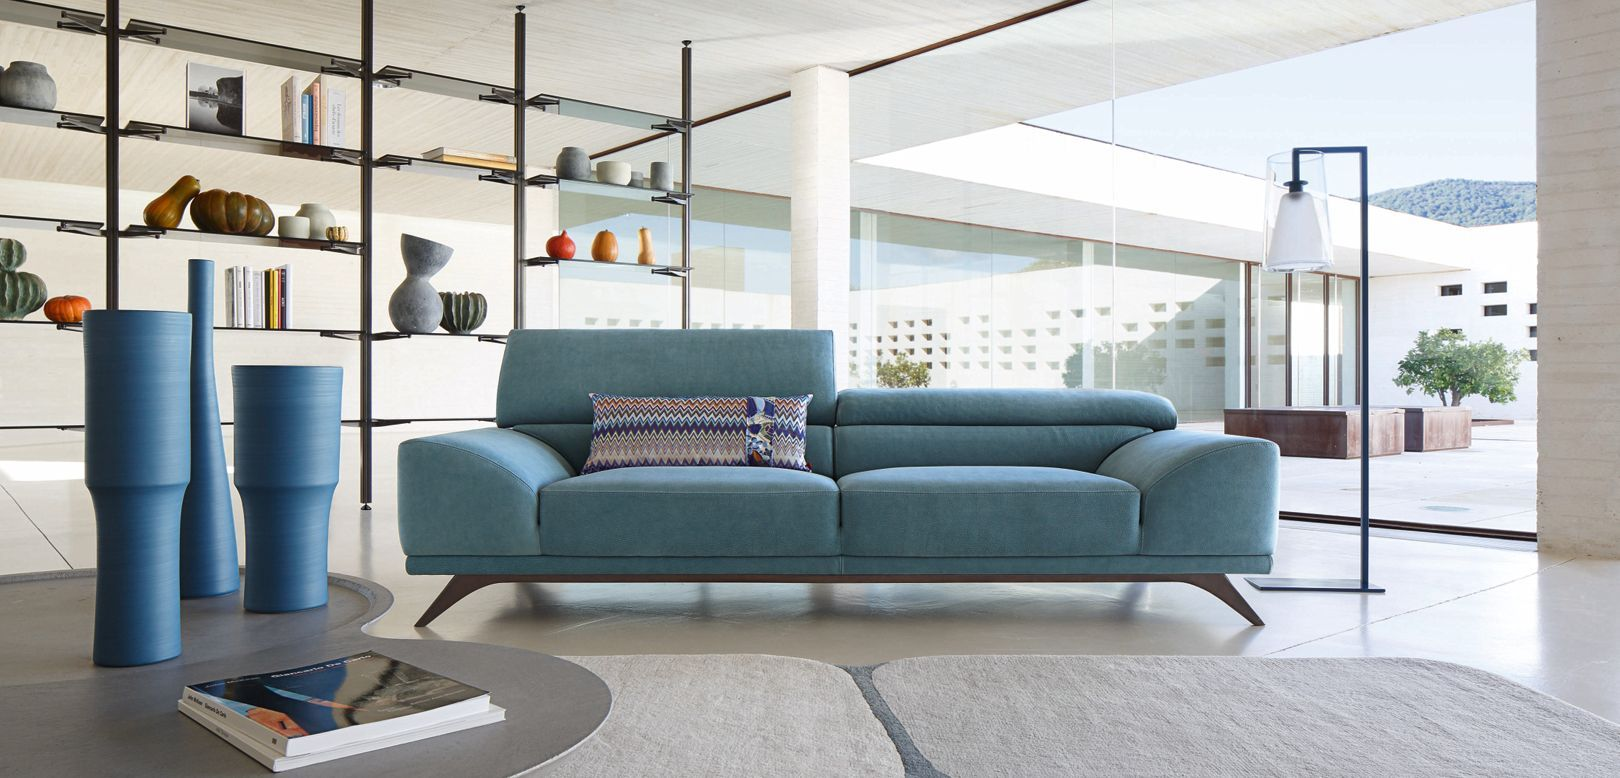 This sofa looks amazing roche bobois huge three seats for Canape poltrone et sofa